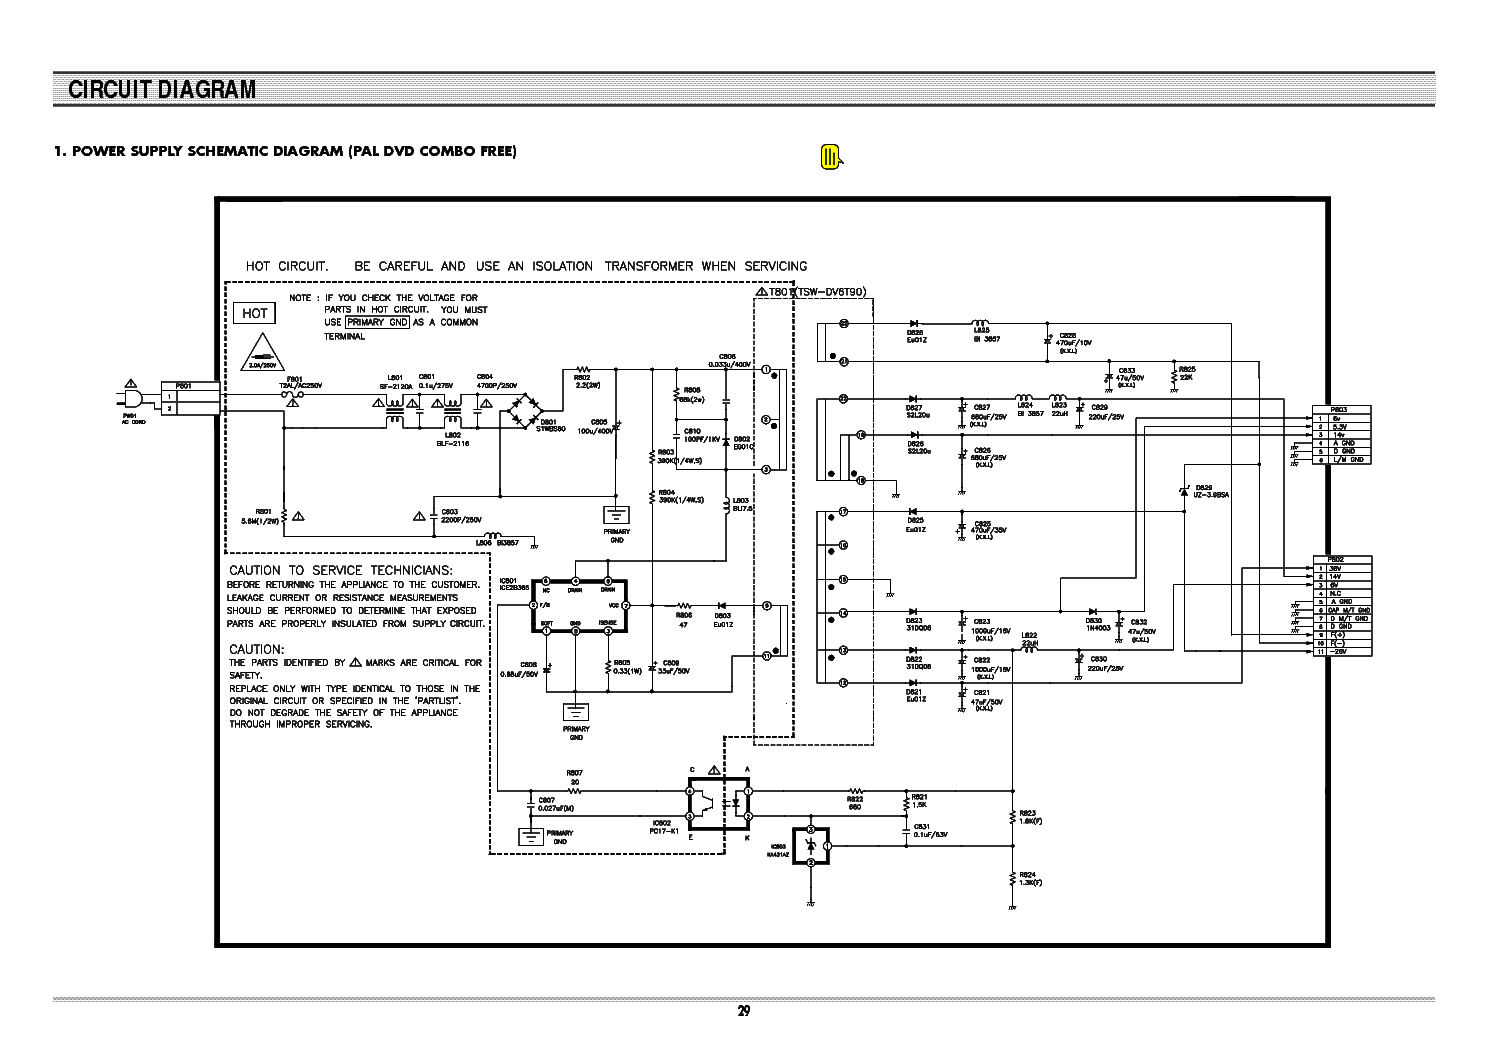 DAEWOO SD-8100 SCH Service Manual download, schematics, eeprom, repair info for electronics experts